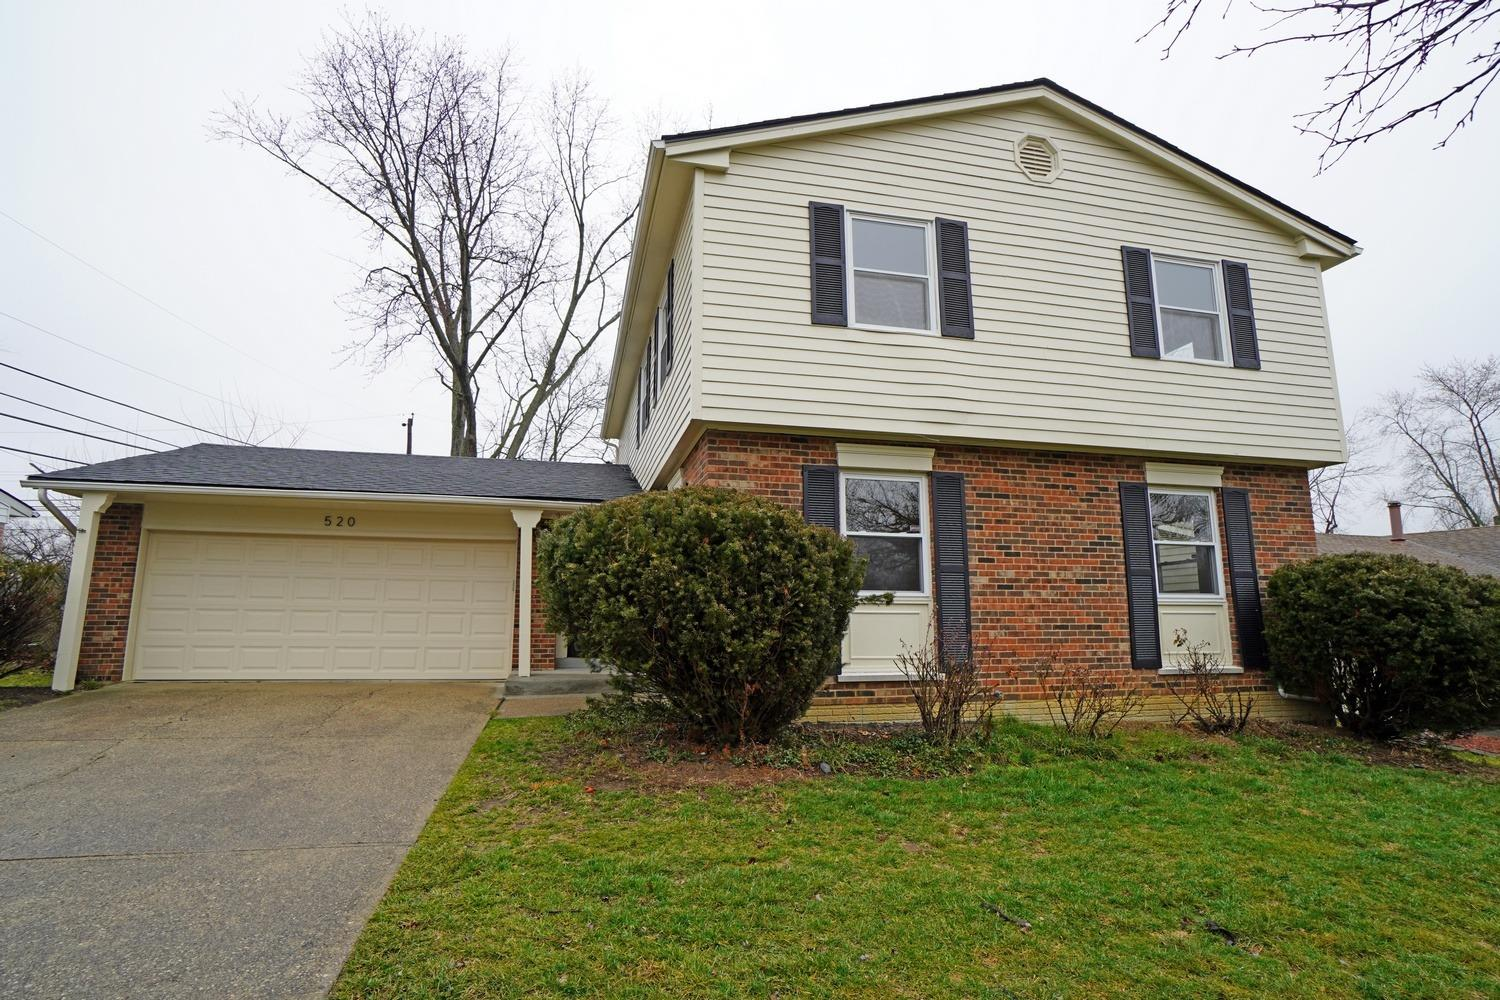 Photo 2 for 520 Waycross Rd Forest Park, OH 45240